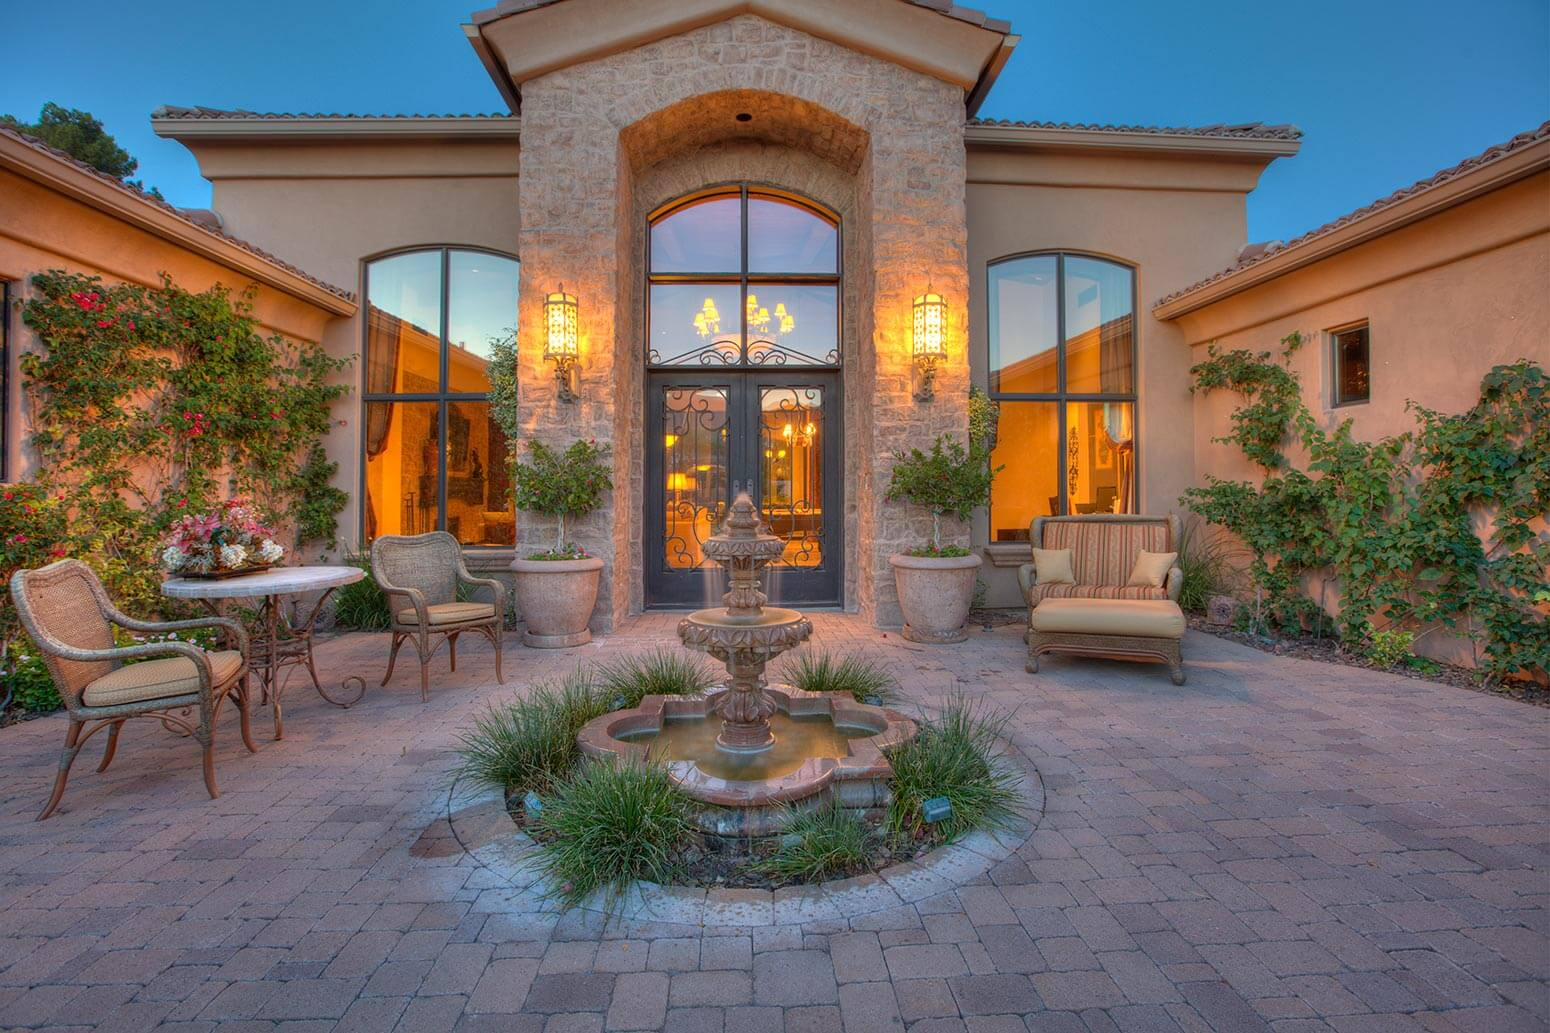 Destination M – Paradise Valley Arizona Villa